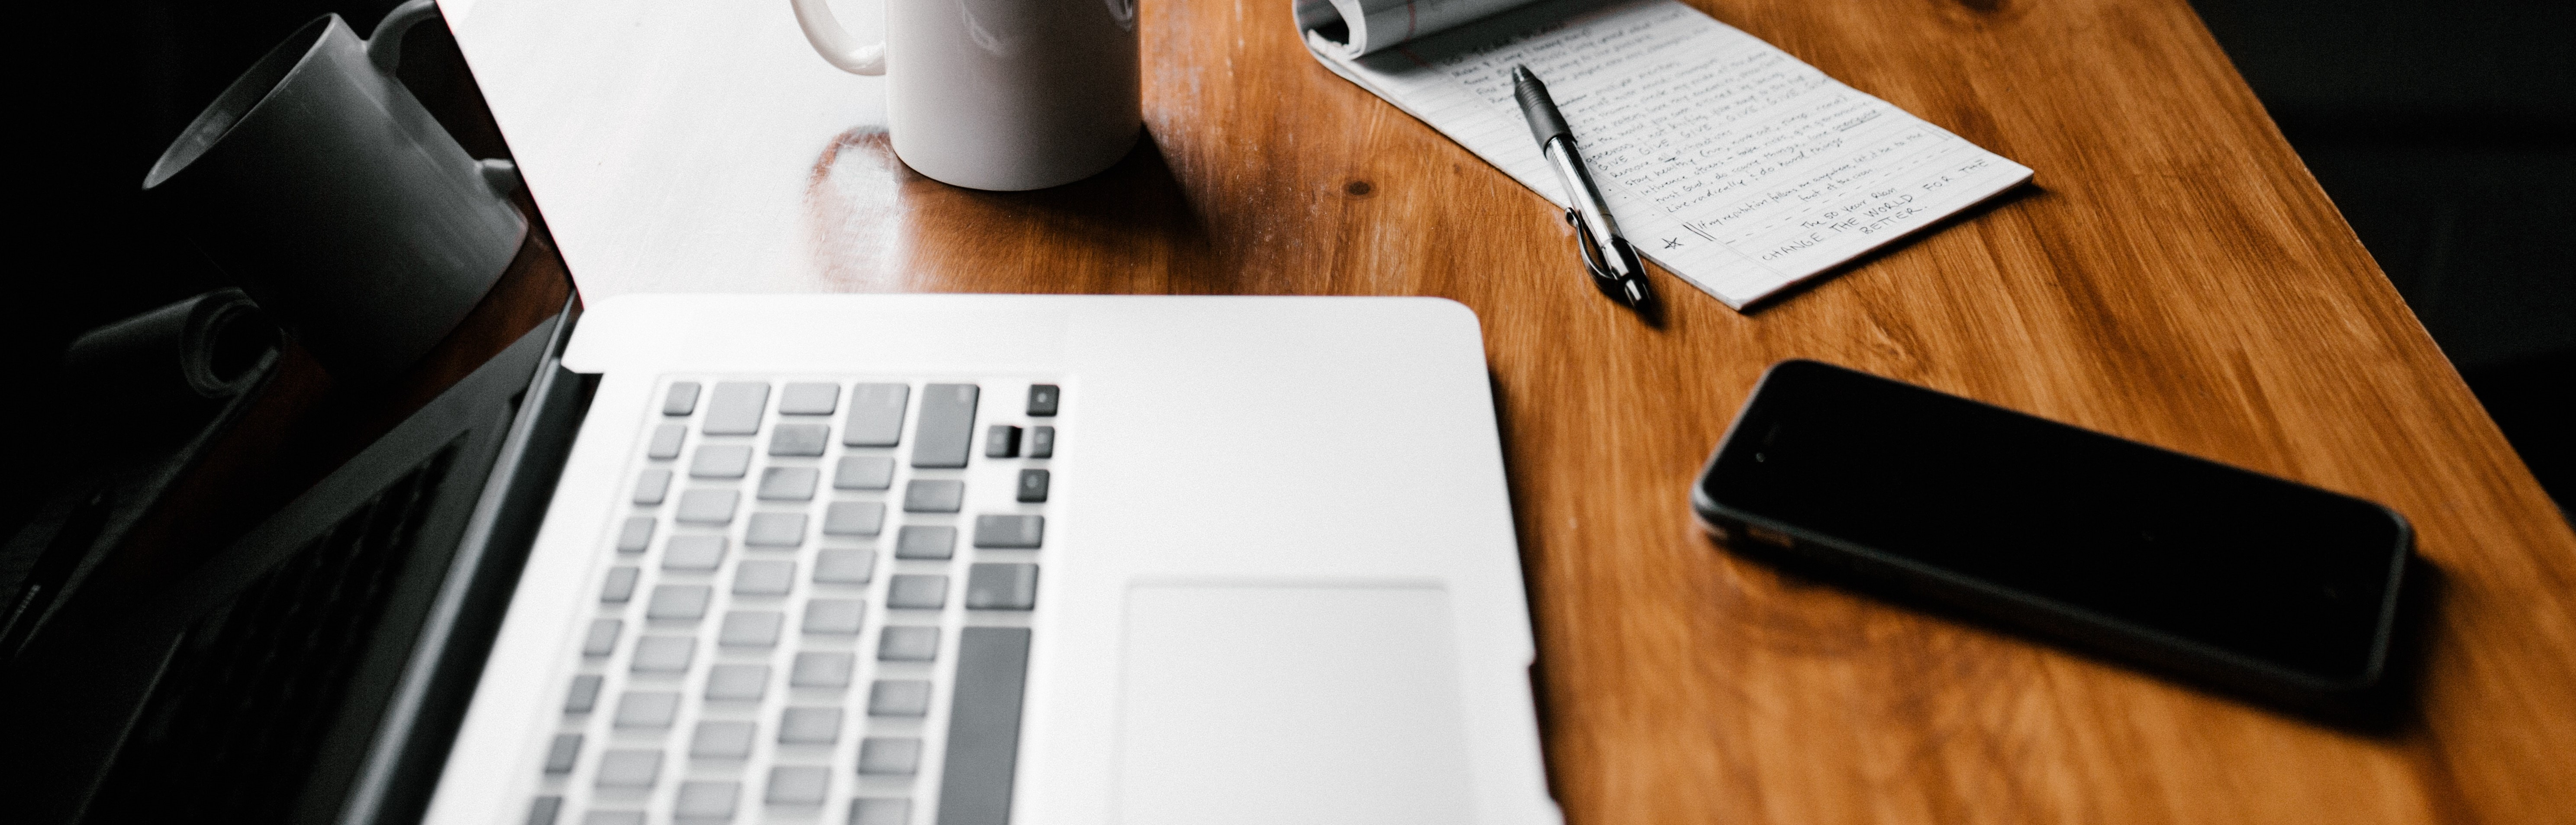 Photo by Andrew Neel on Unsplash. A coffee mug and laptop on a table